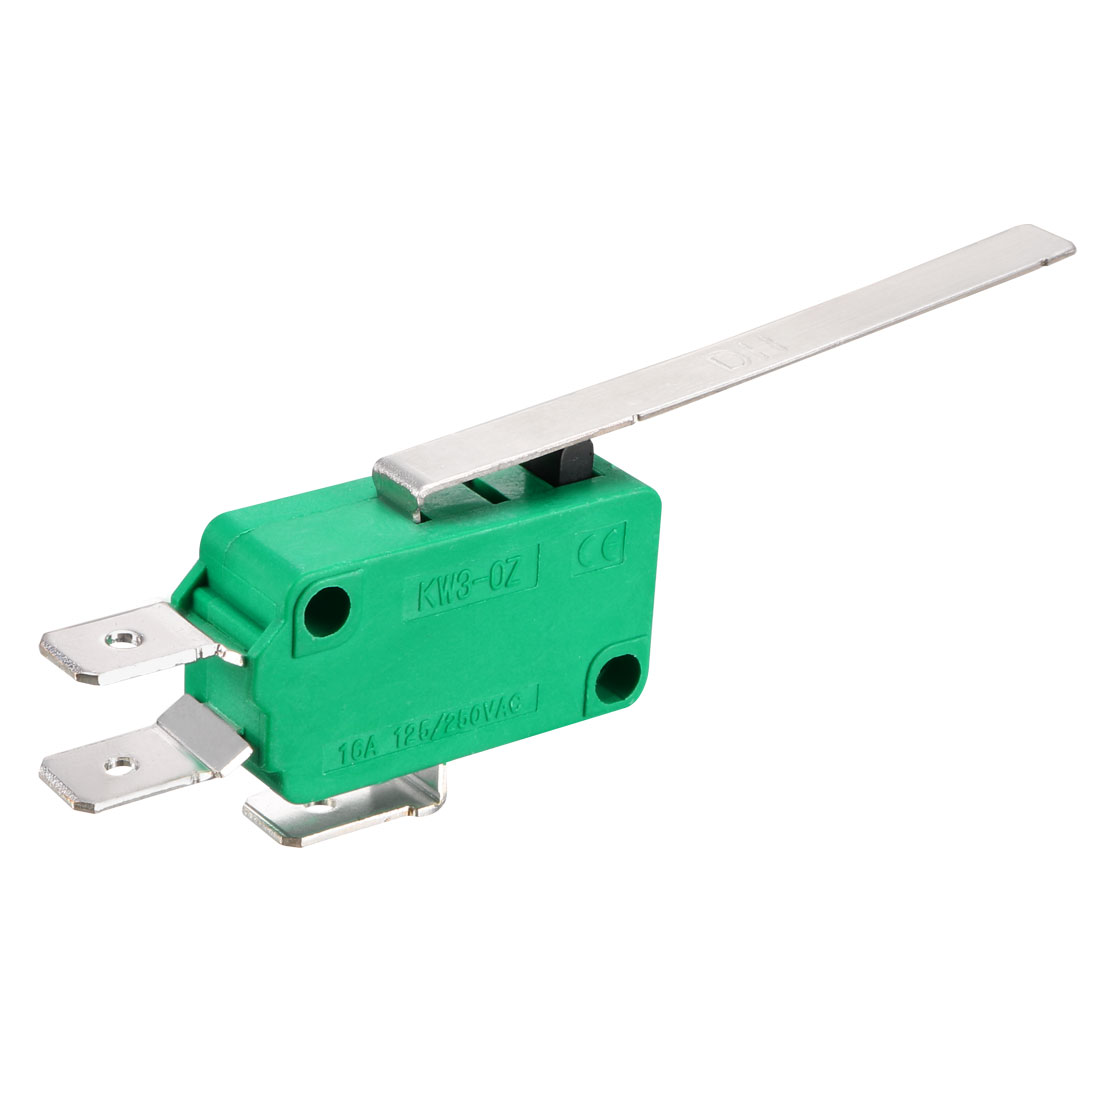 12PCS KW3-OZ 16A 125/250VAC Long Straight Hinge Lever Type Micro Limit Switches - image 1 of 4